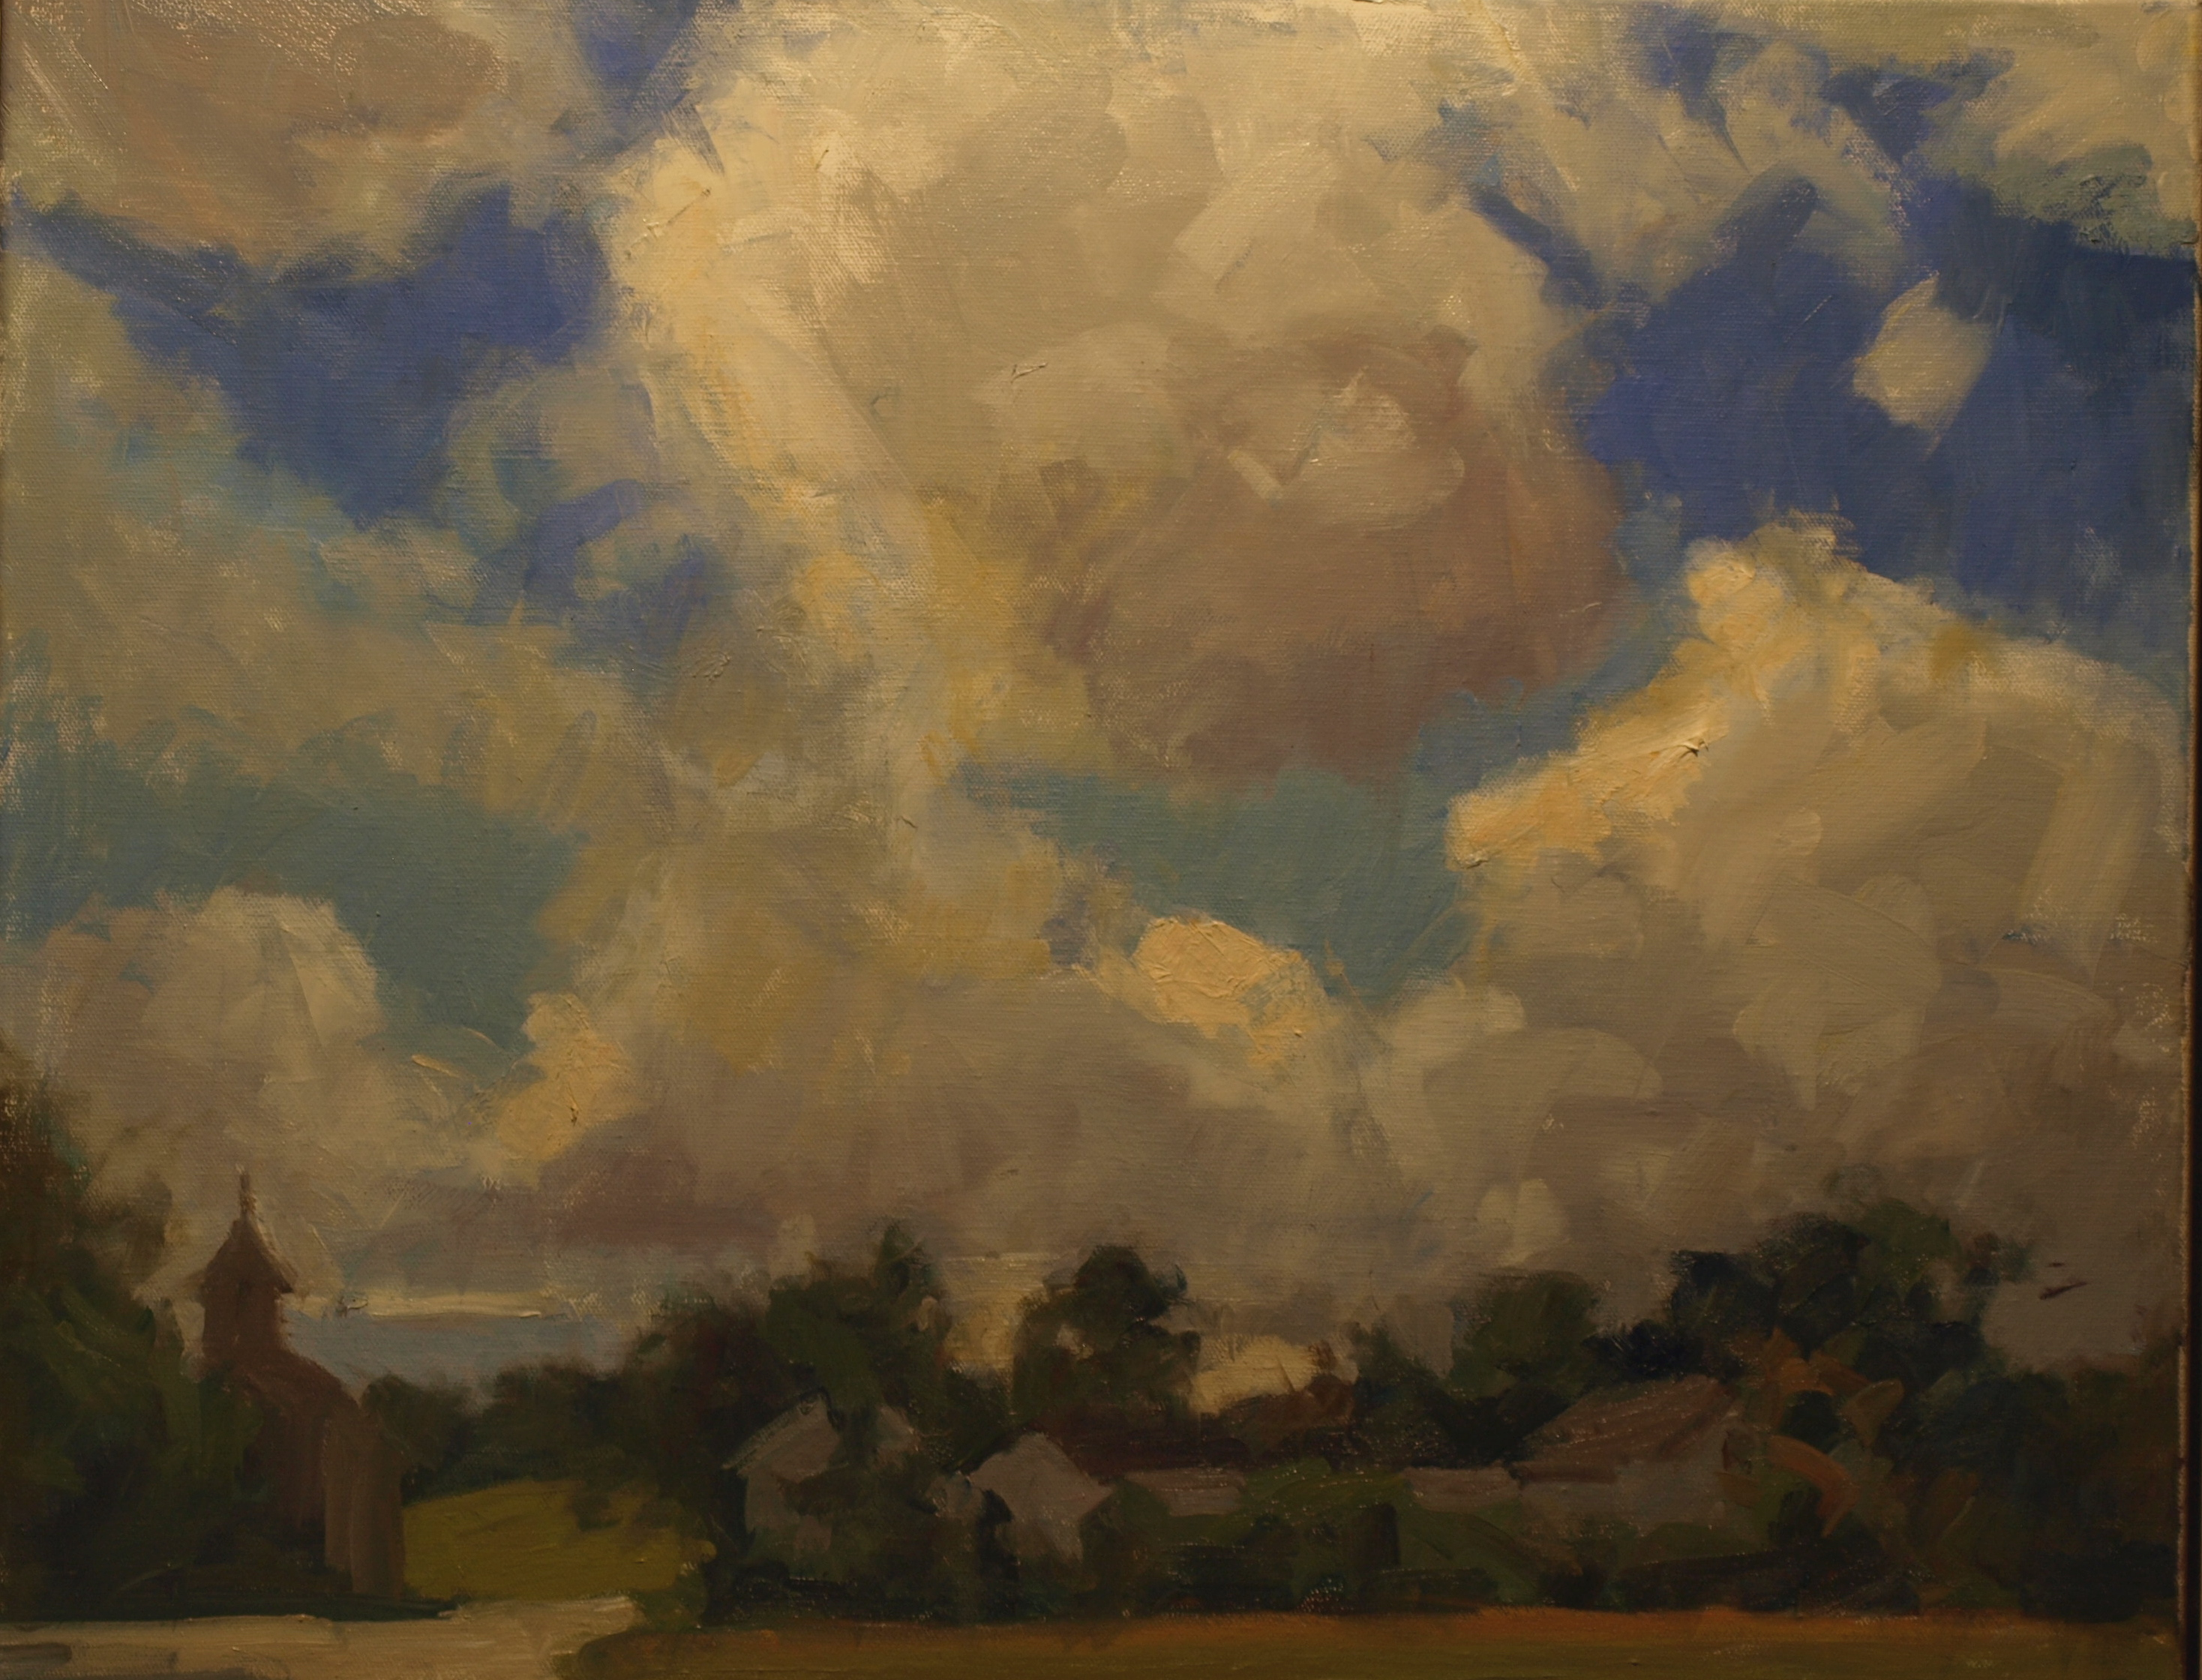 Summer Day, Oil on Canvas, 20 x 24 Inches, by Susan Grisell, $650